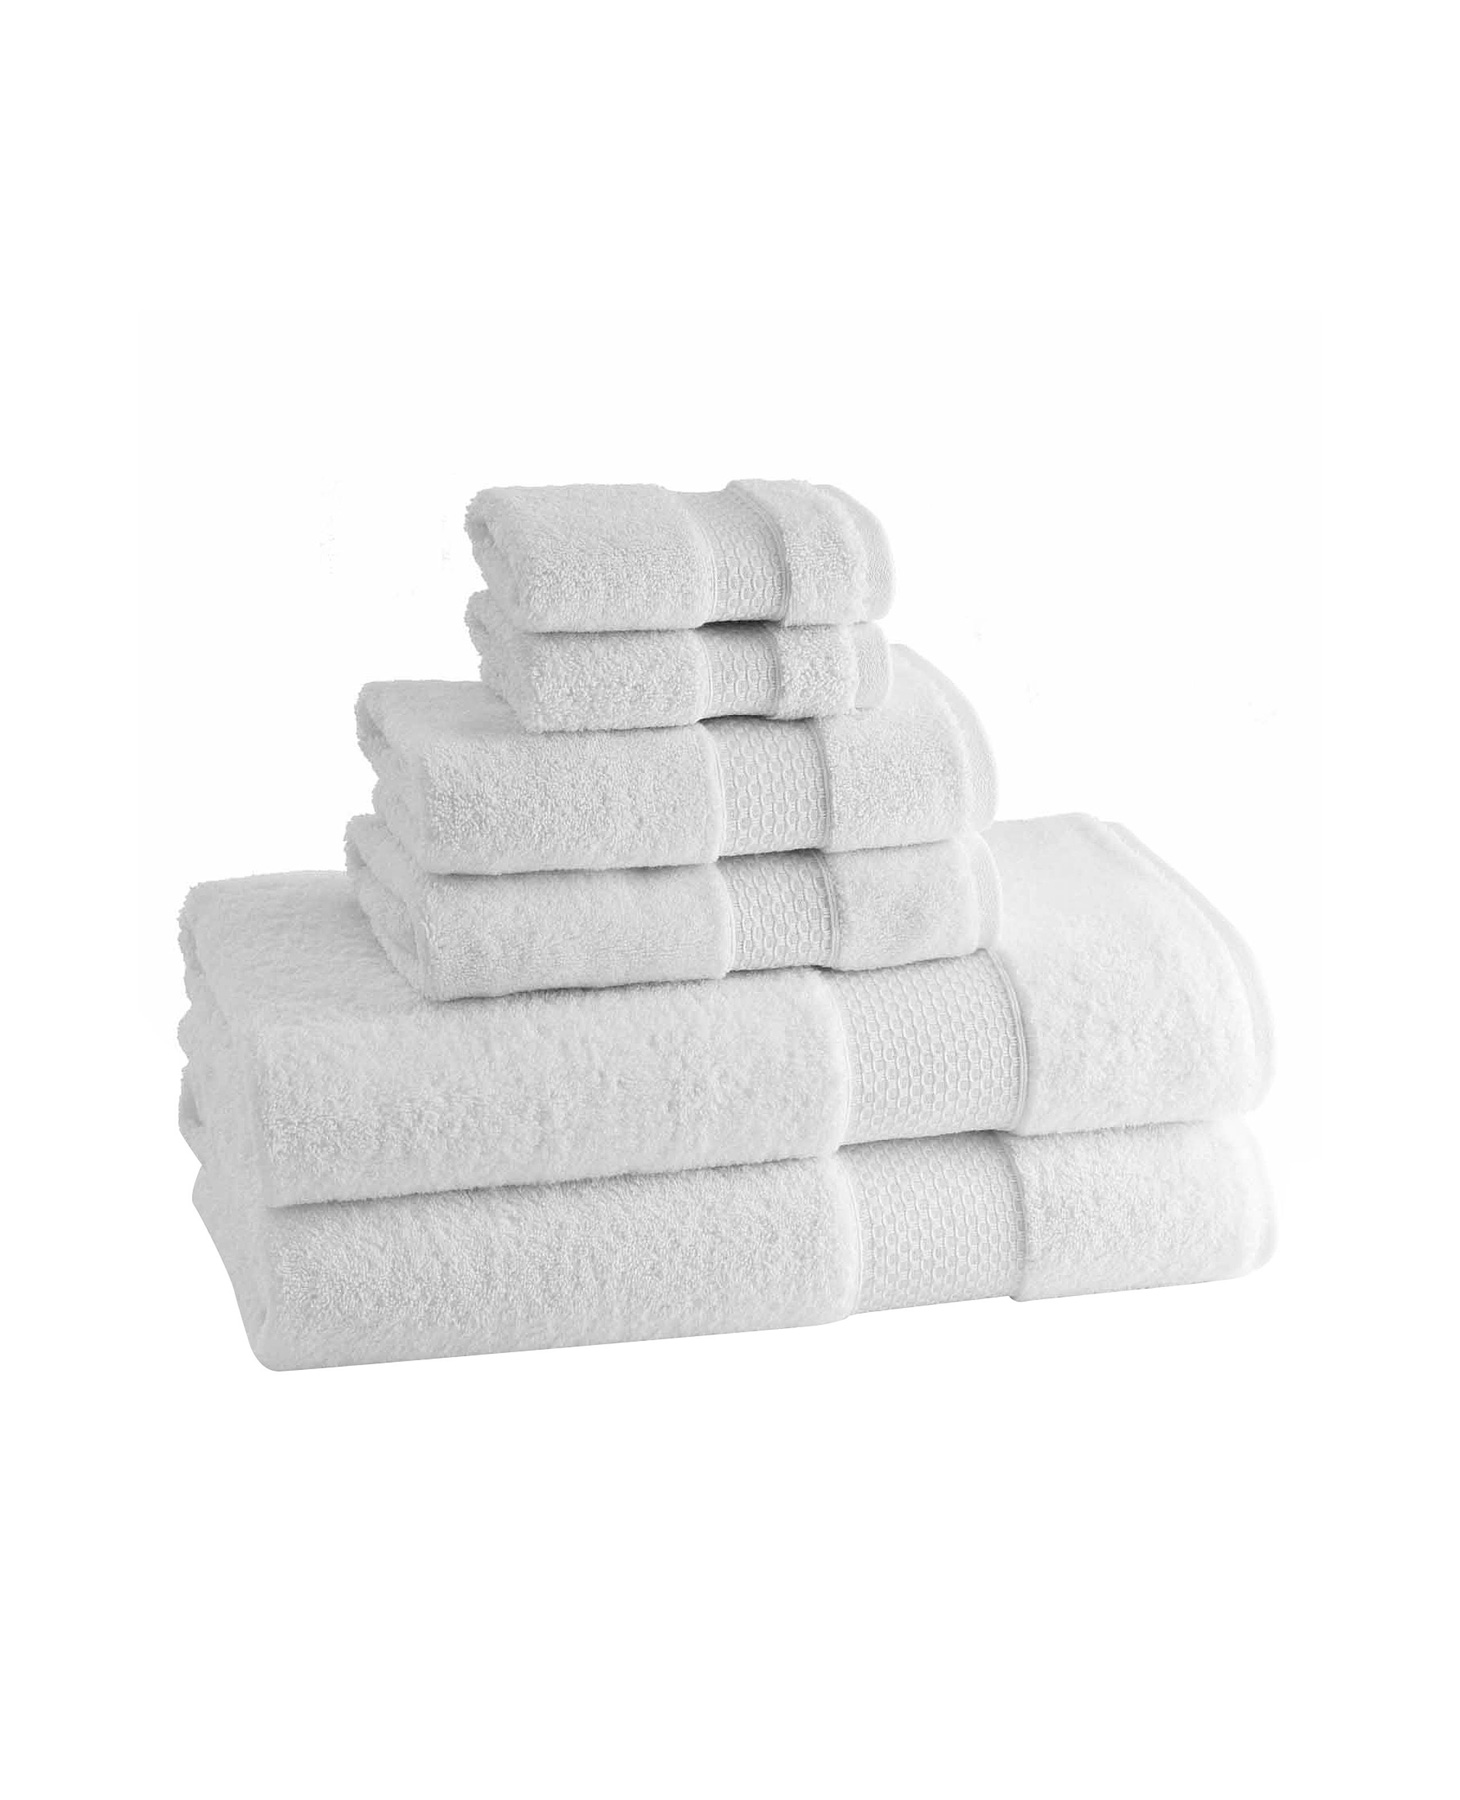 Kassatex Elegance Turkish Cotton Six Piece Towel Set